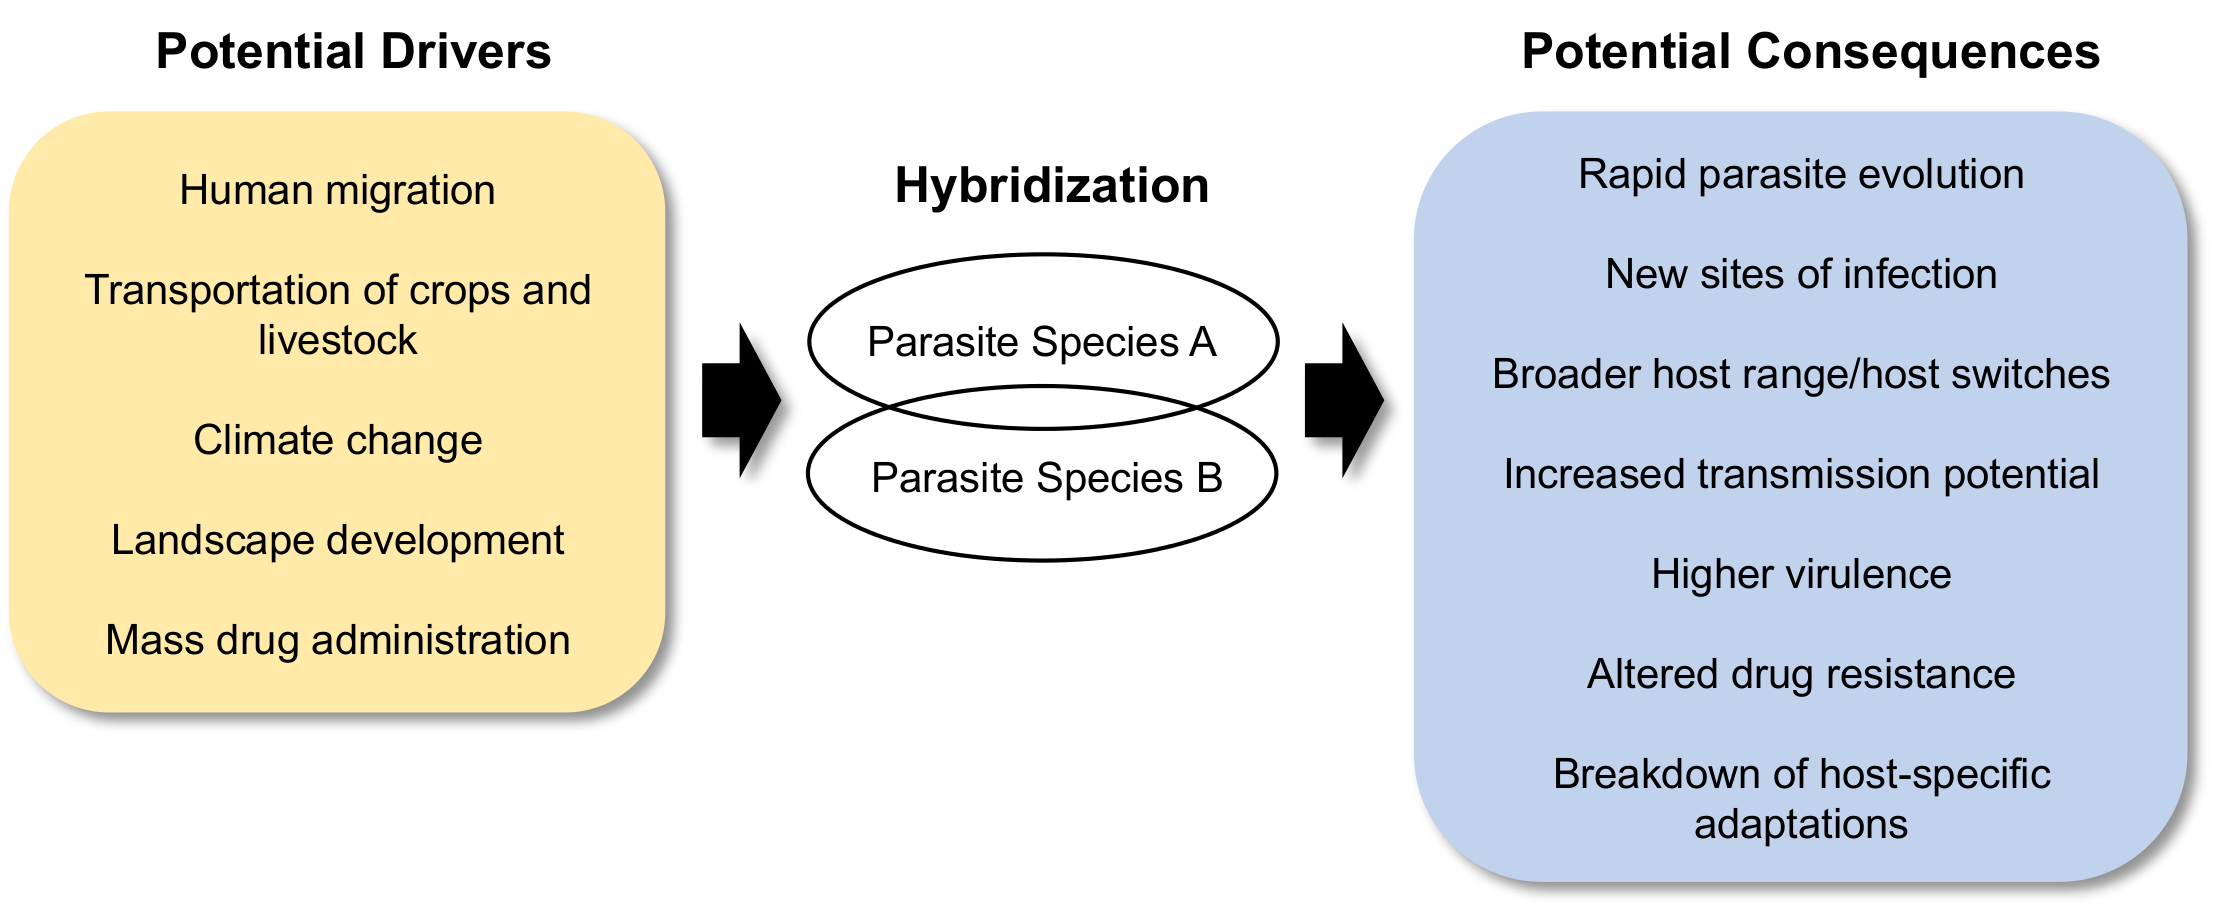 Schematic of the drivers and consequences of parasite hybridization.